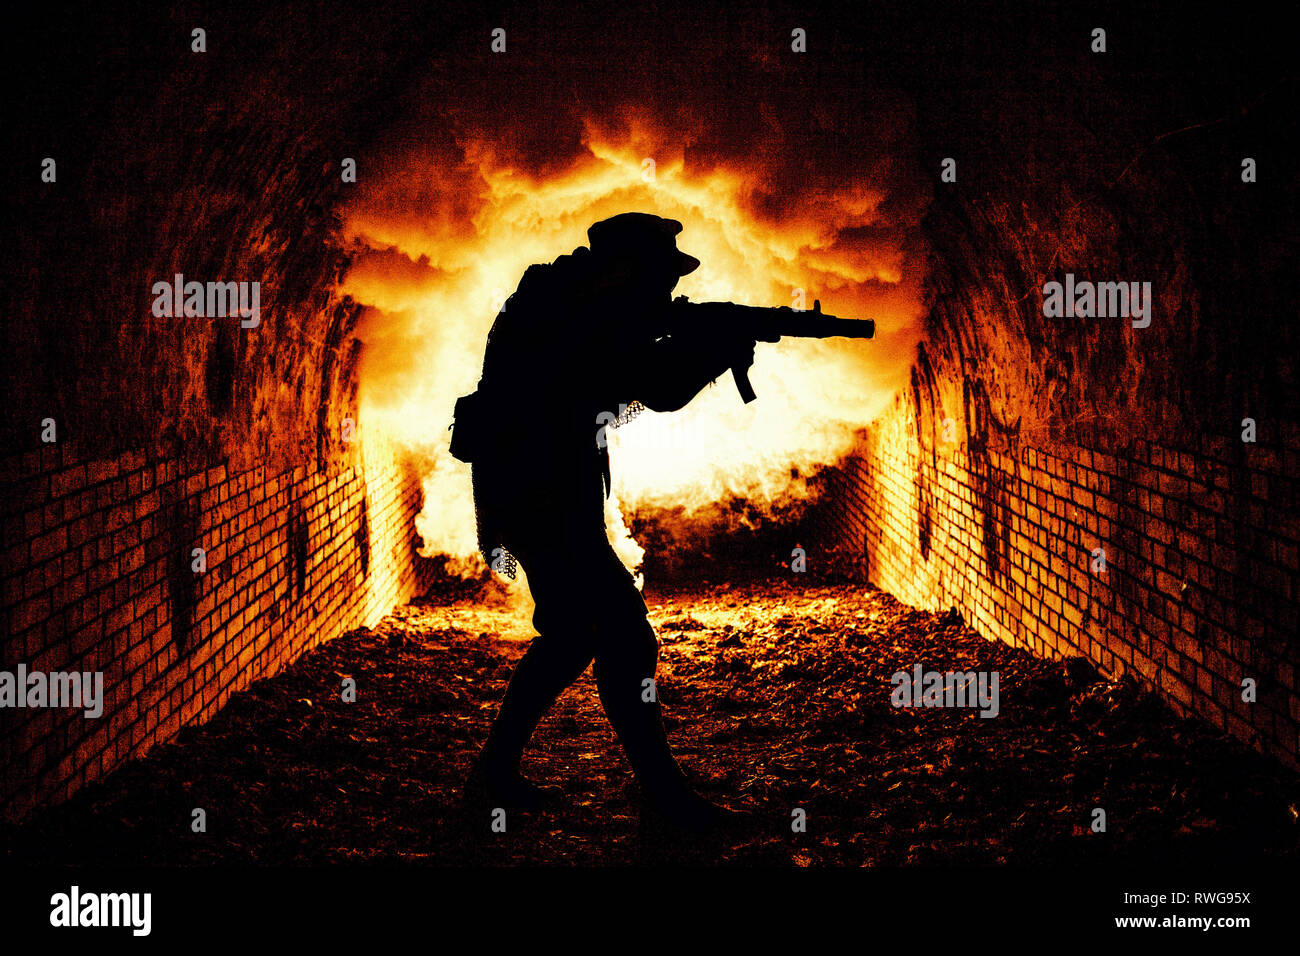 Silhouette of post apocalyptic soldier shooting weapon in underground sewage tunnel. - Stock Image